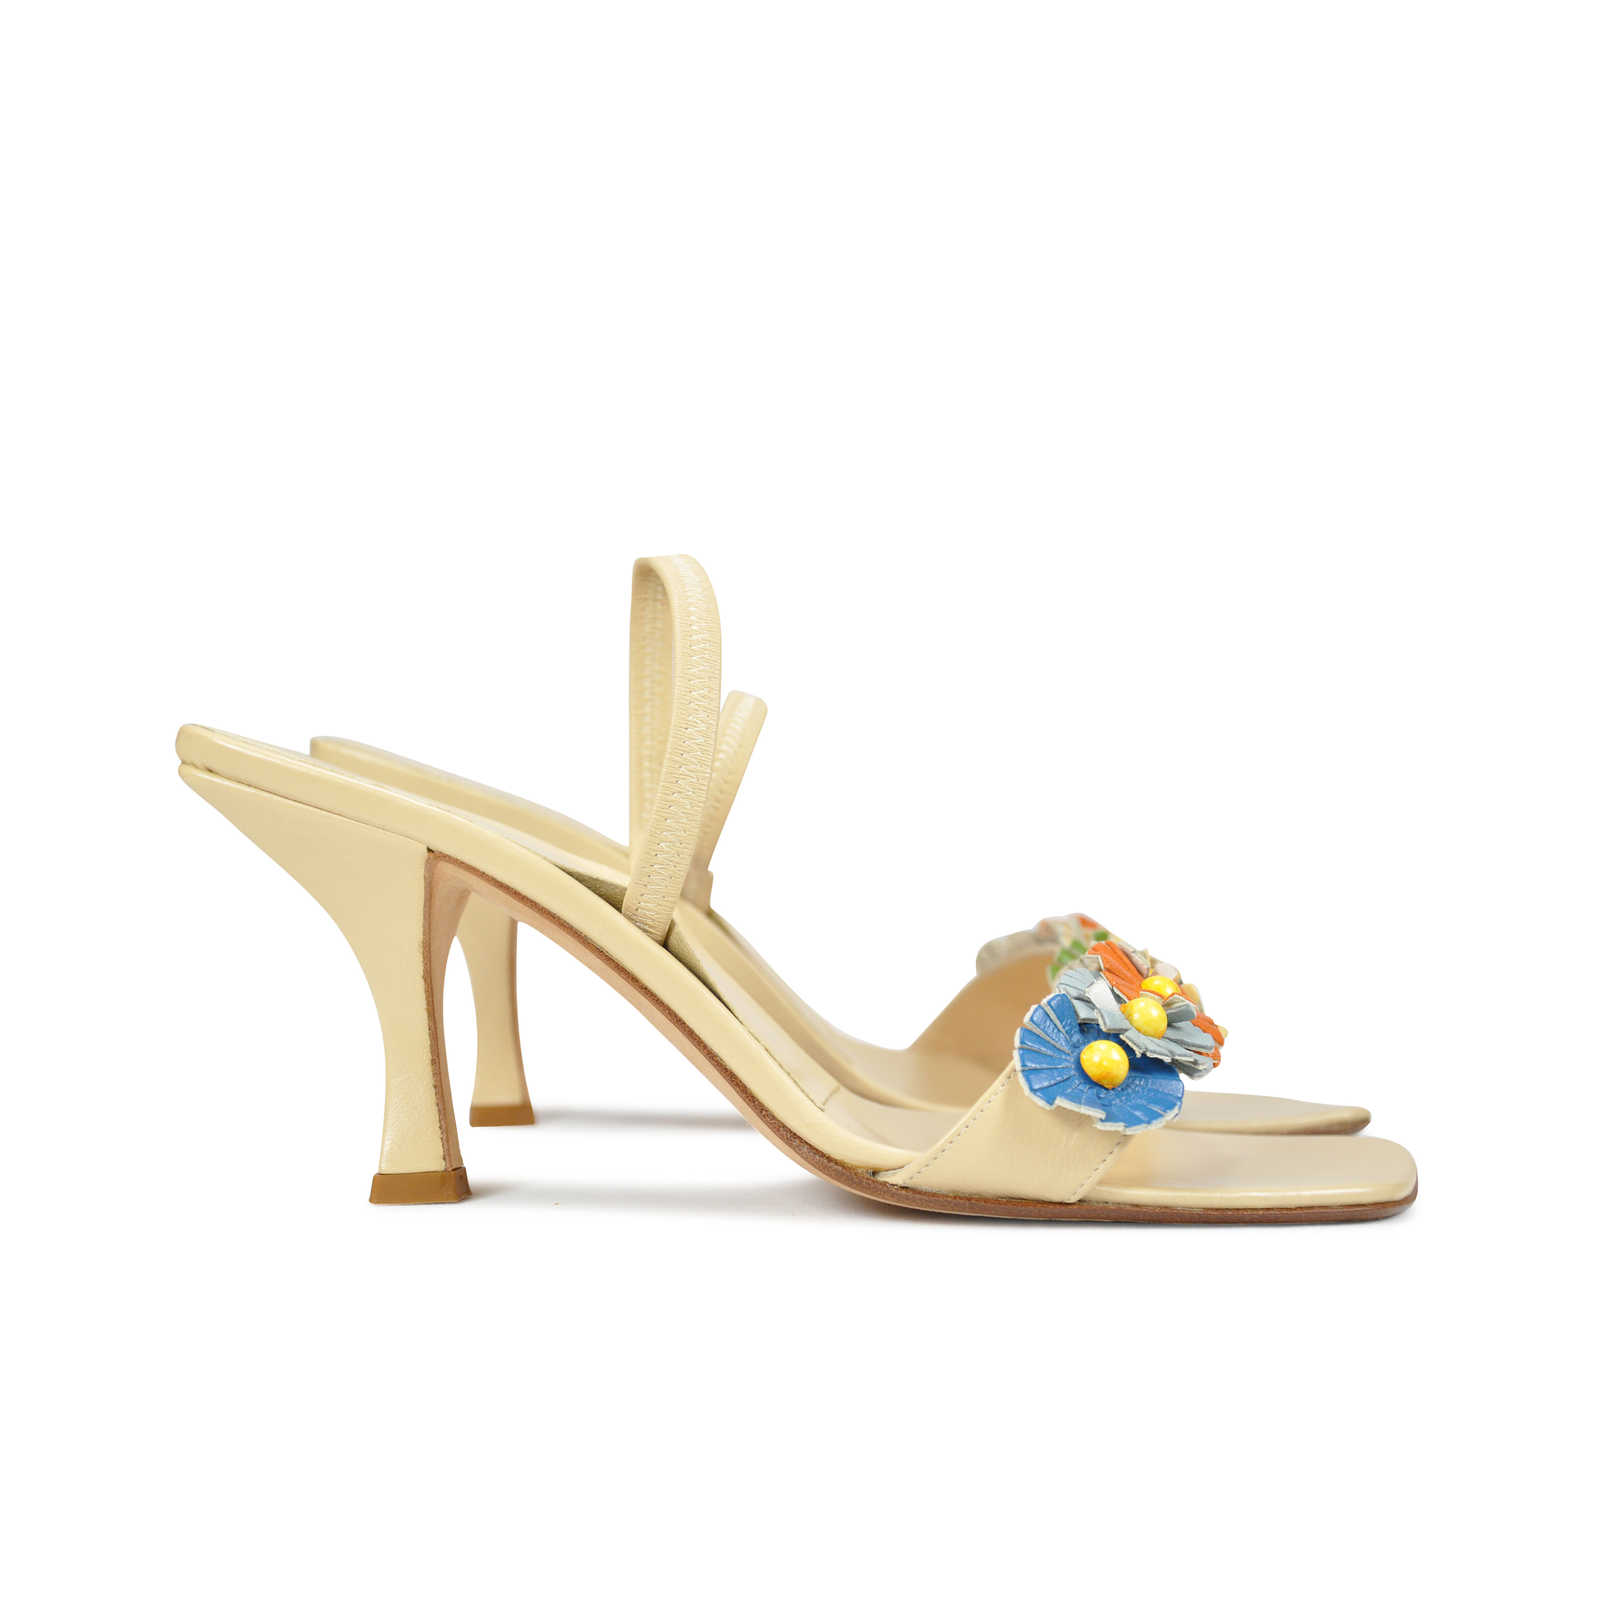 452ea0fd197b ... Authentic Second Hand Fendi Floral Kitten Heels (PSS-047-00038) -  Thumbnail